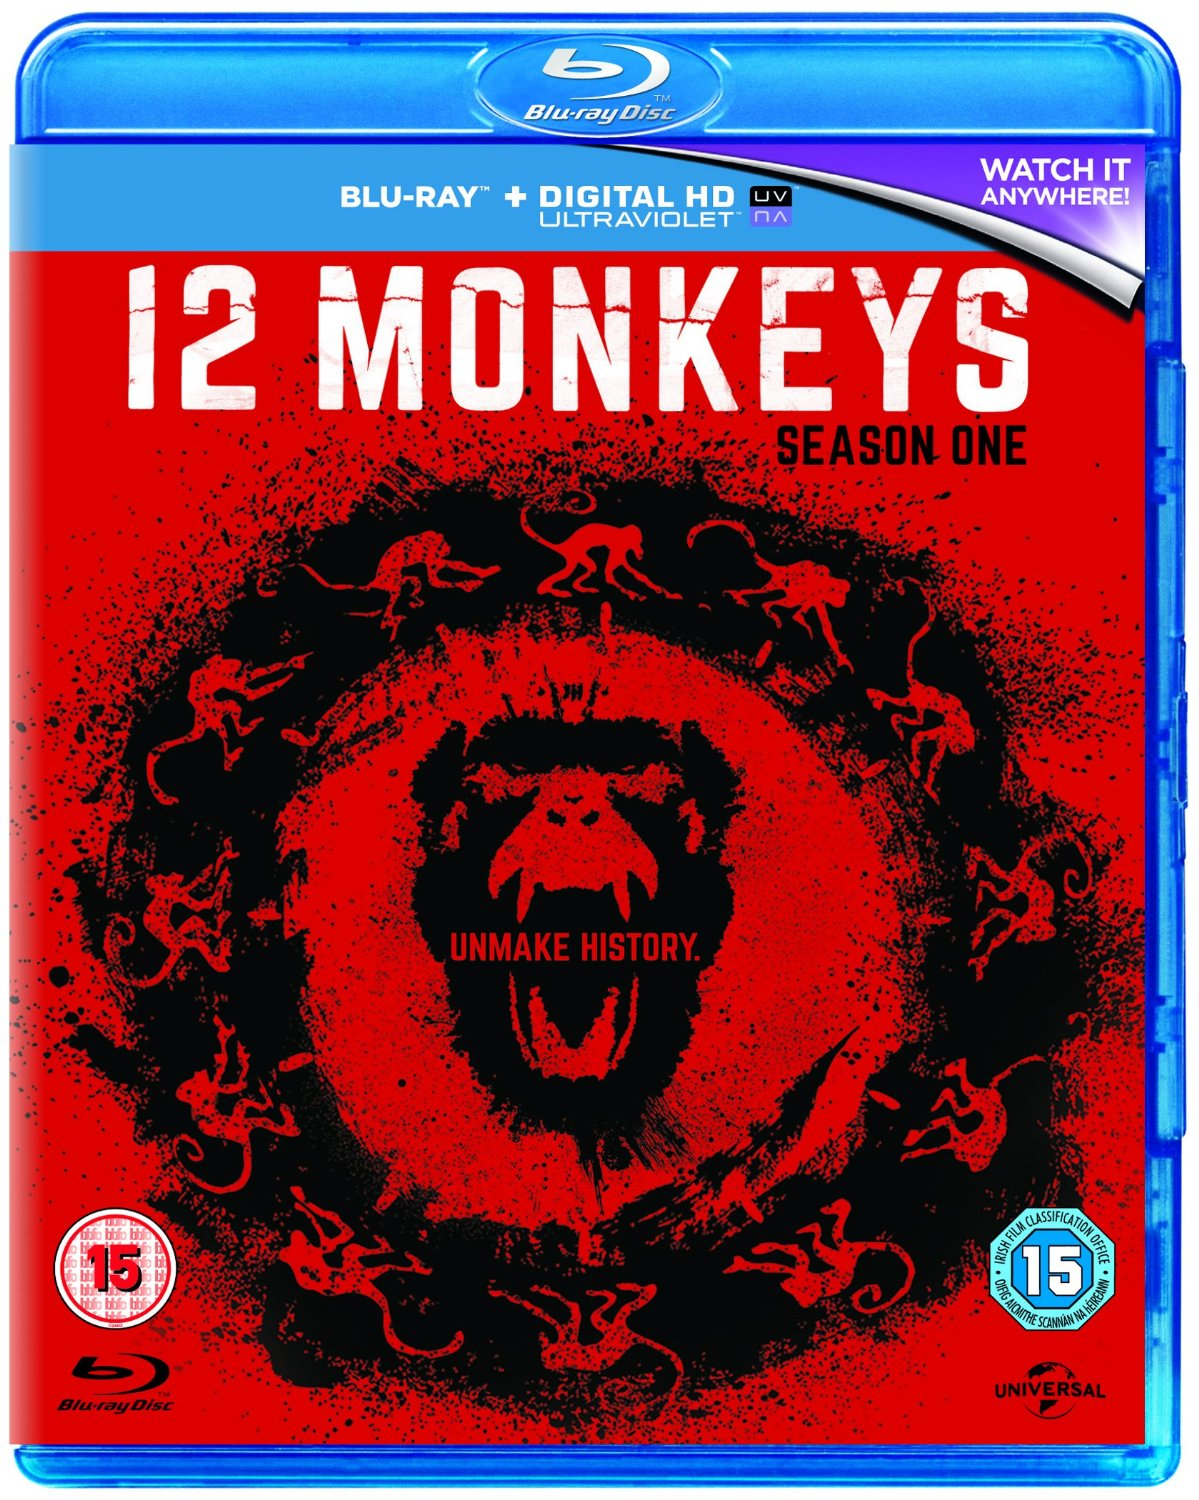 12 Monkeys Season 1 Blu-ray review: time for a comeback?